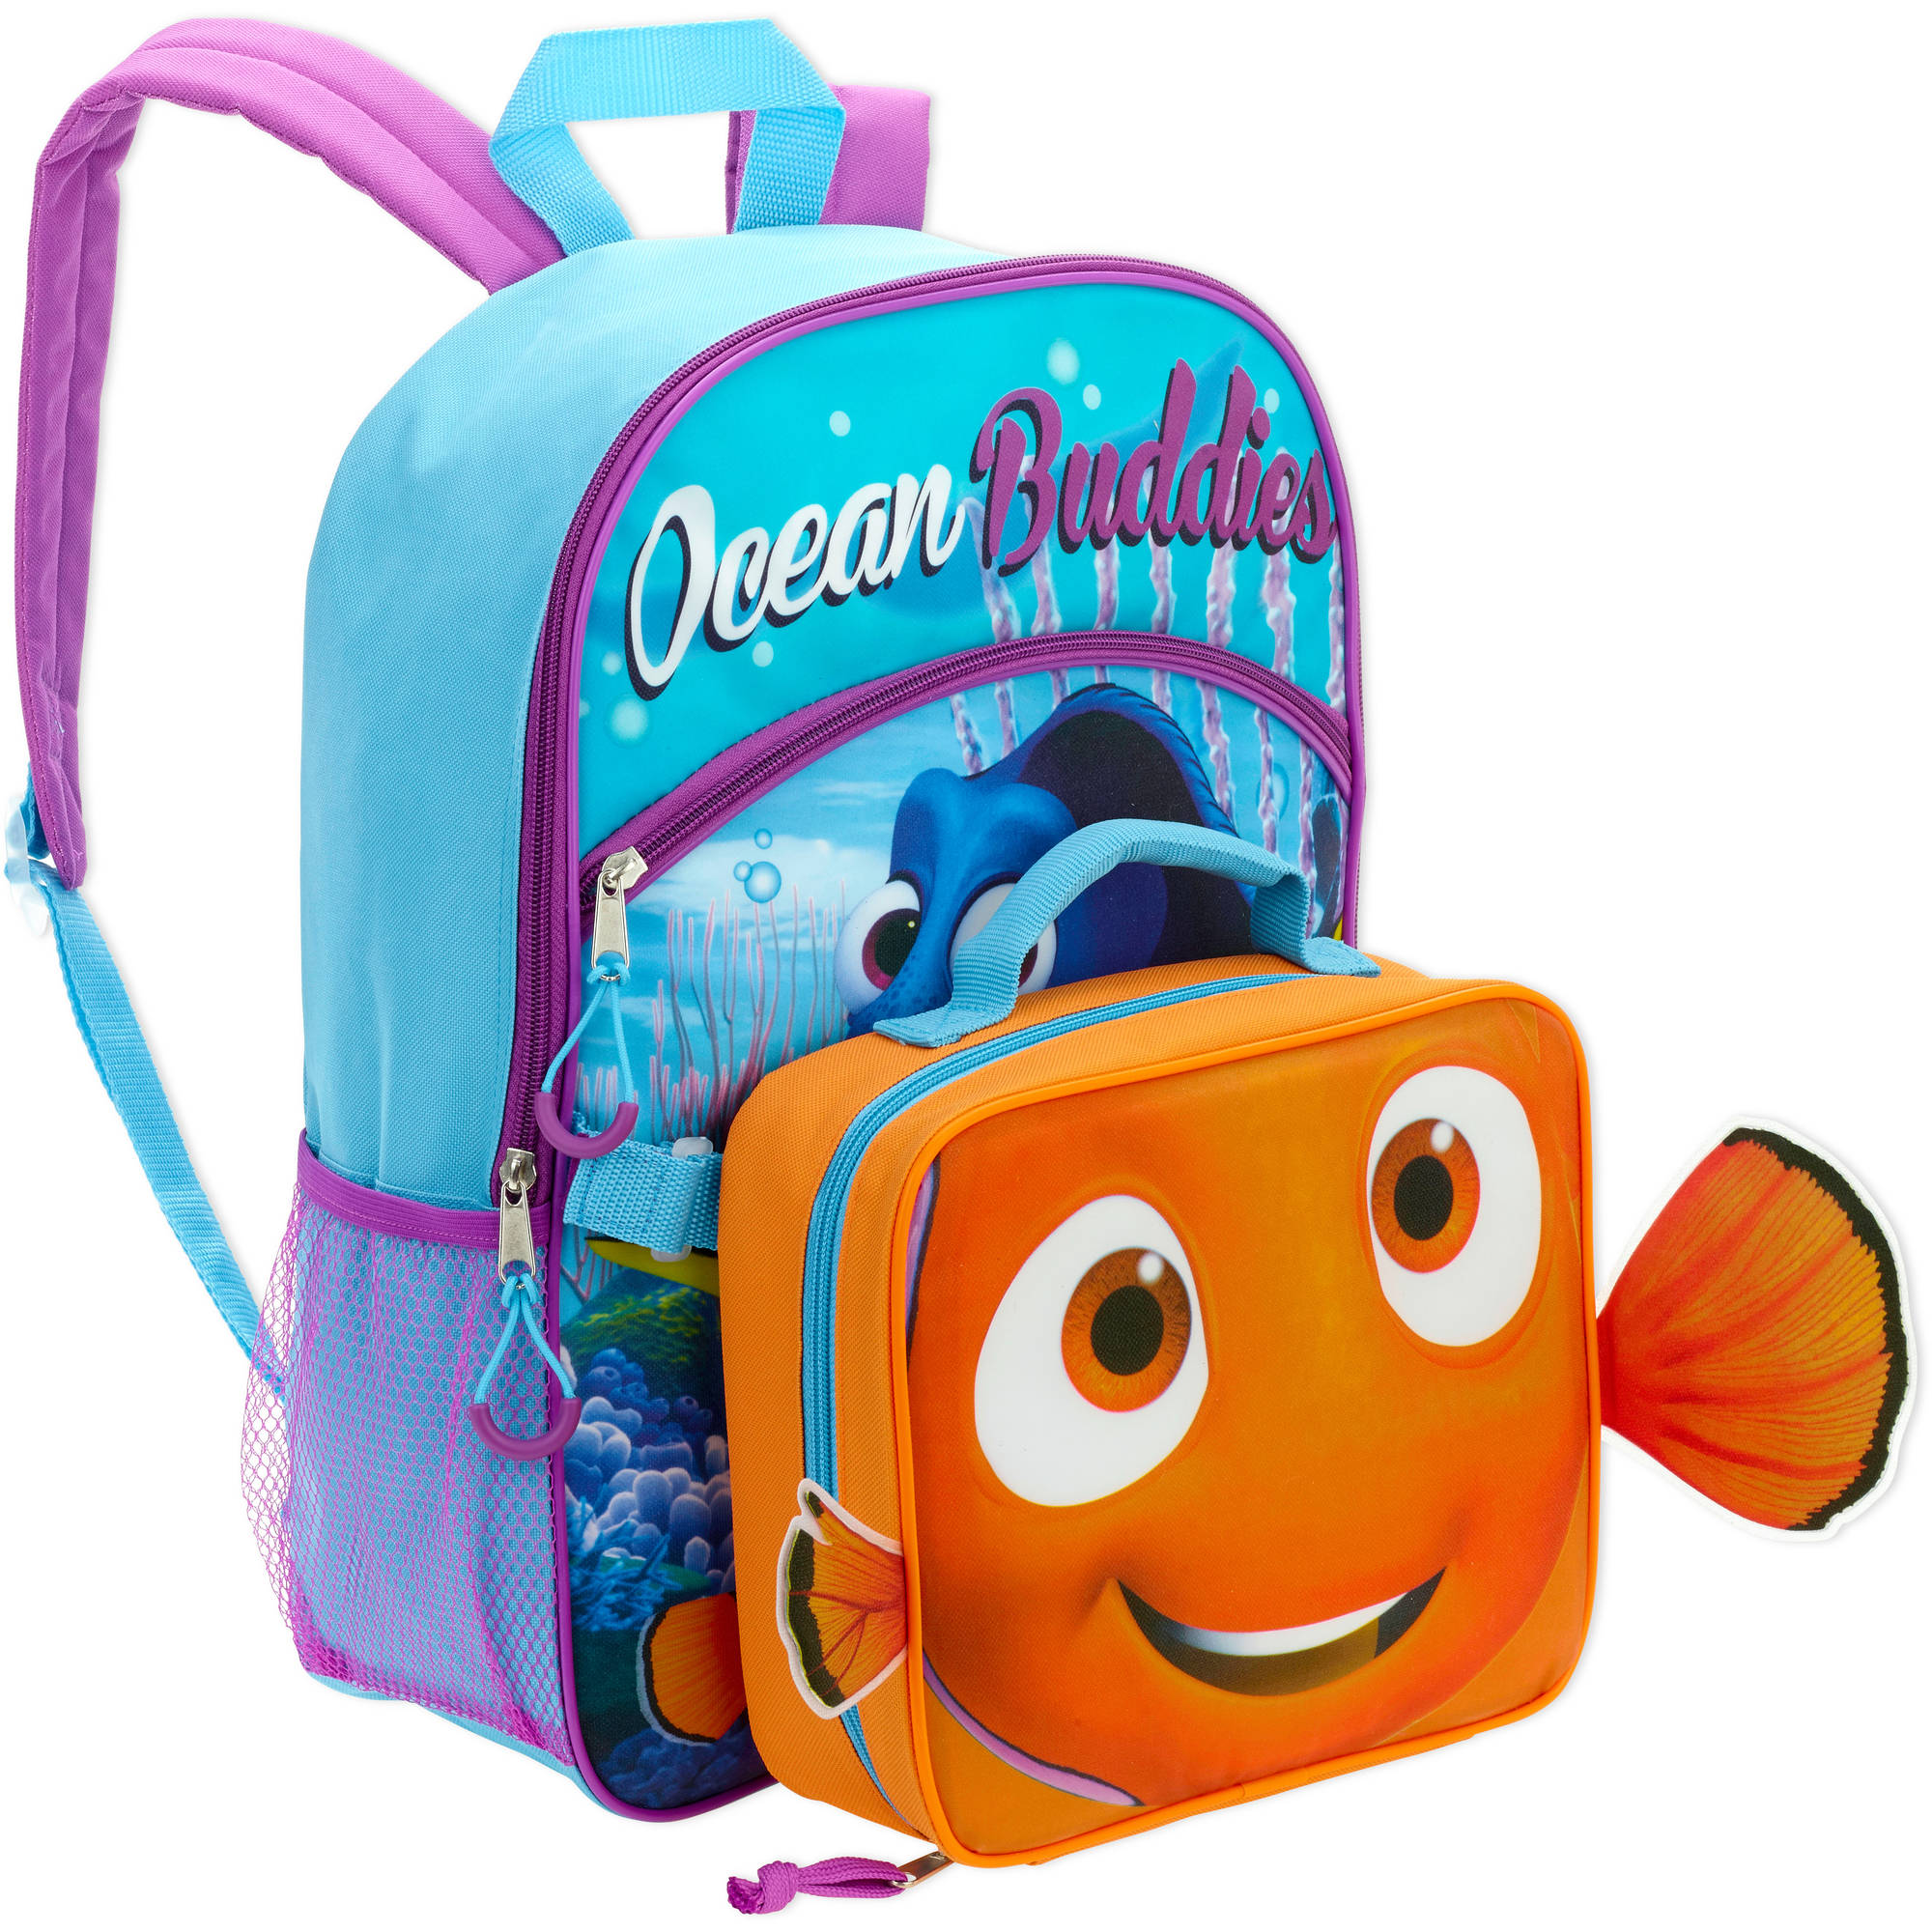 FINDING DORY - 16 Disney Full Size Backpack w  Detachable Lunch Bag -  Walmart.com b840dee98f1c9